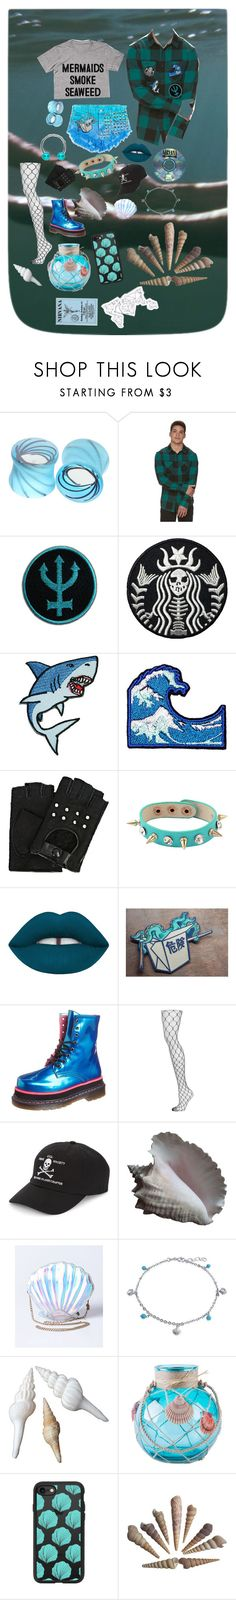 """~For the contest~"" by xxsnowfoxx ❤ liked on Polyvore featuring Hot Topic, Urban Pipeline, Karl Lagerfeld, Lime Crime, Buffalo, Topshop, 032C, Bling Jewelry and Casetify"